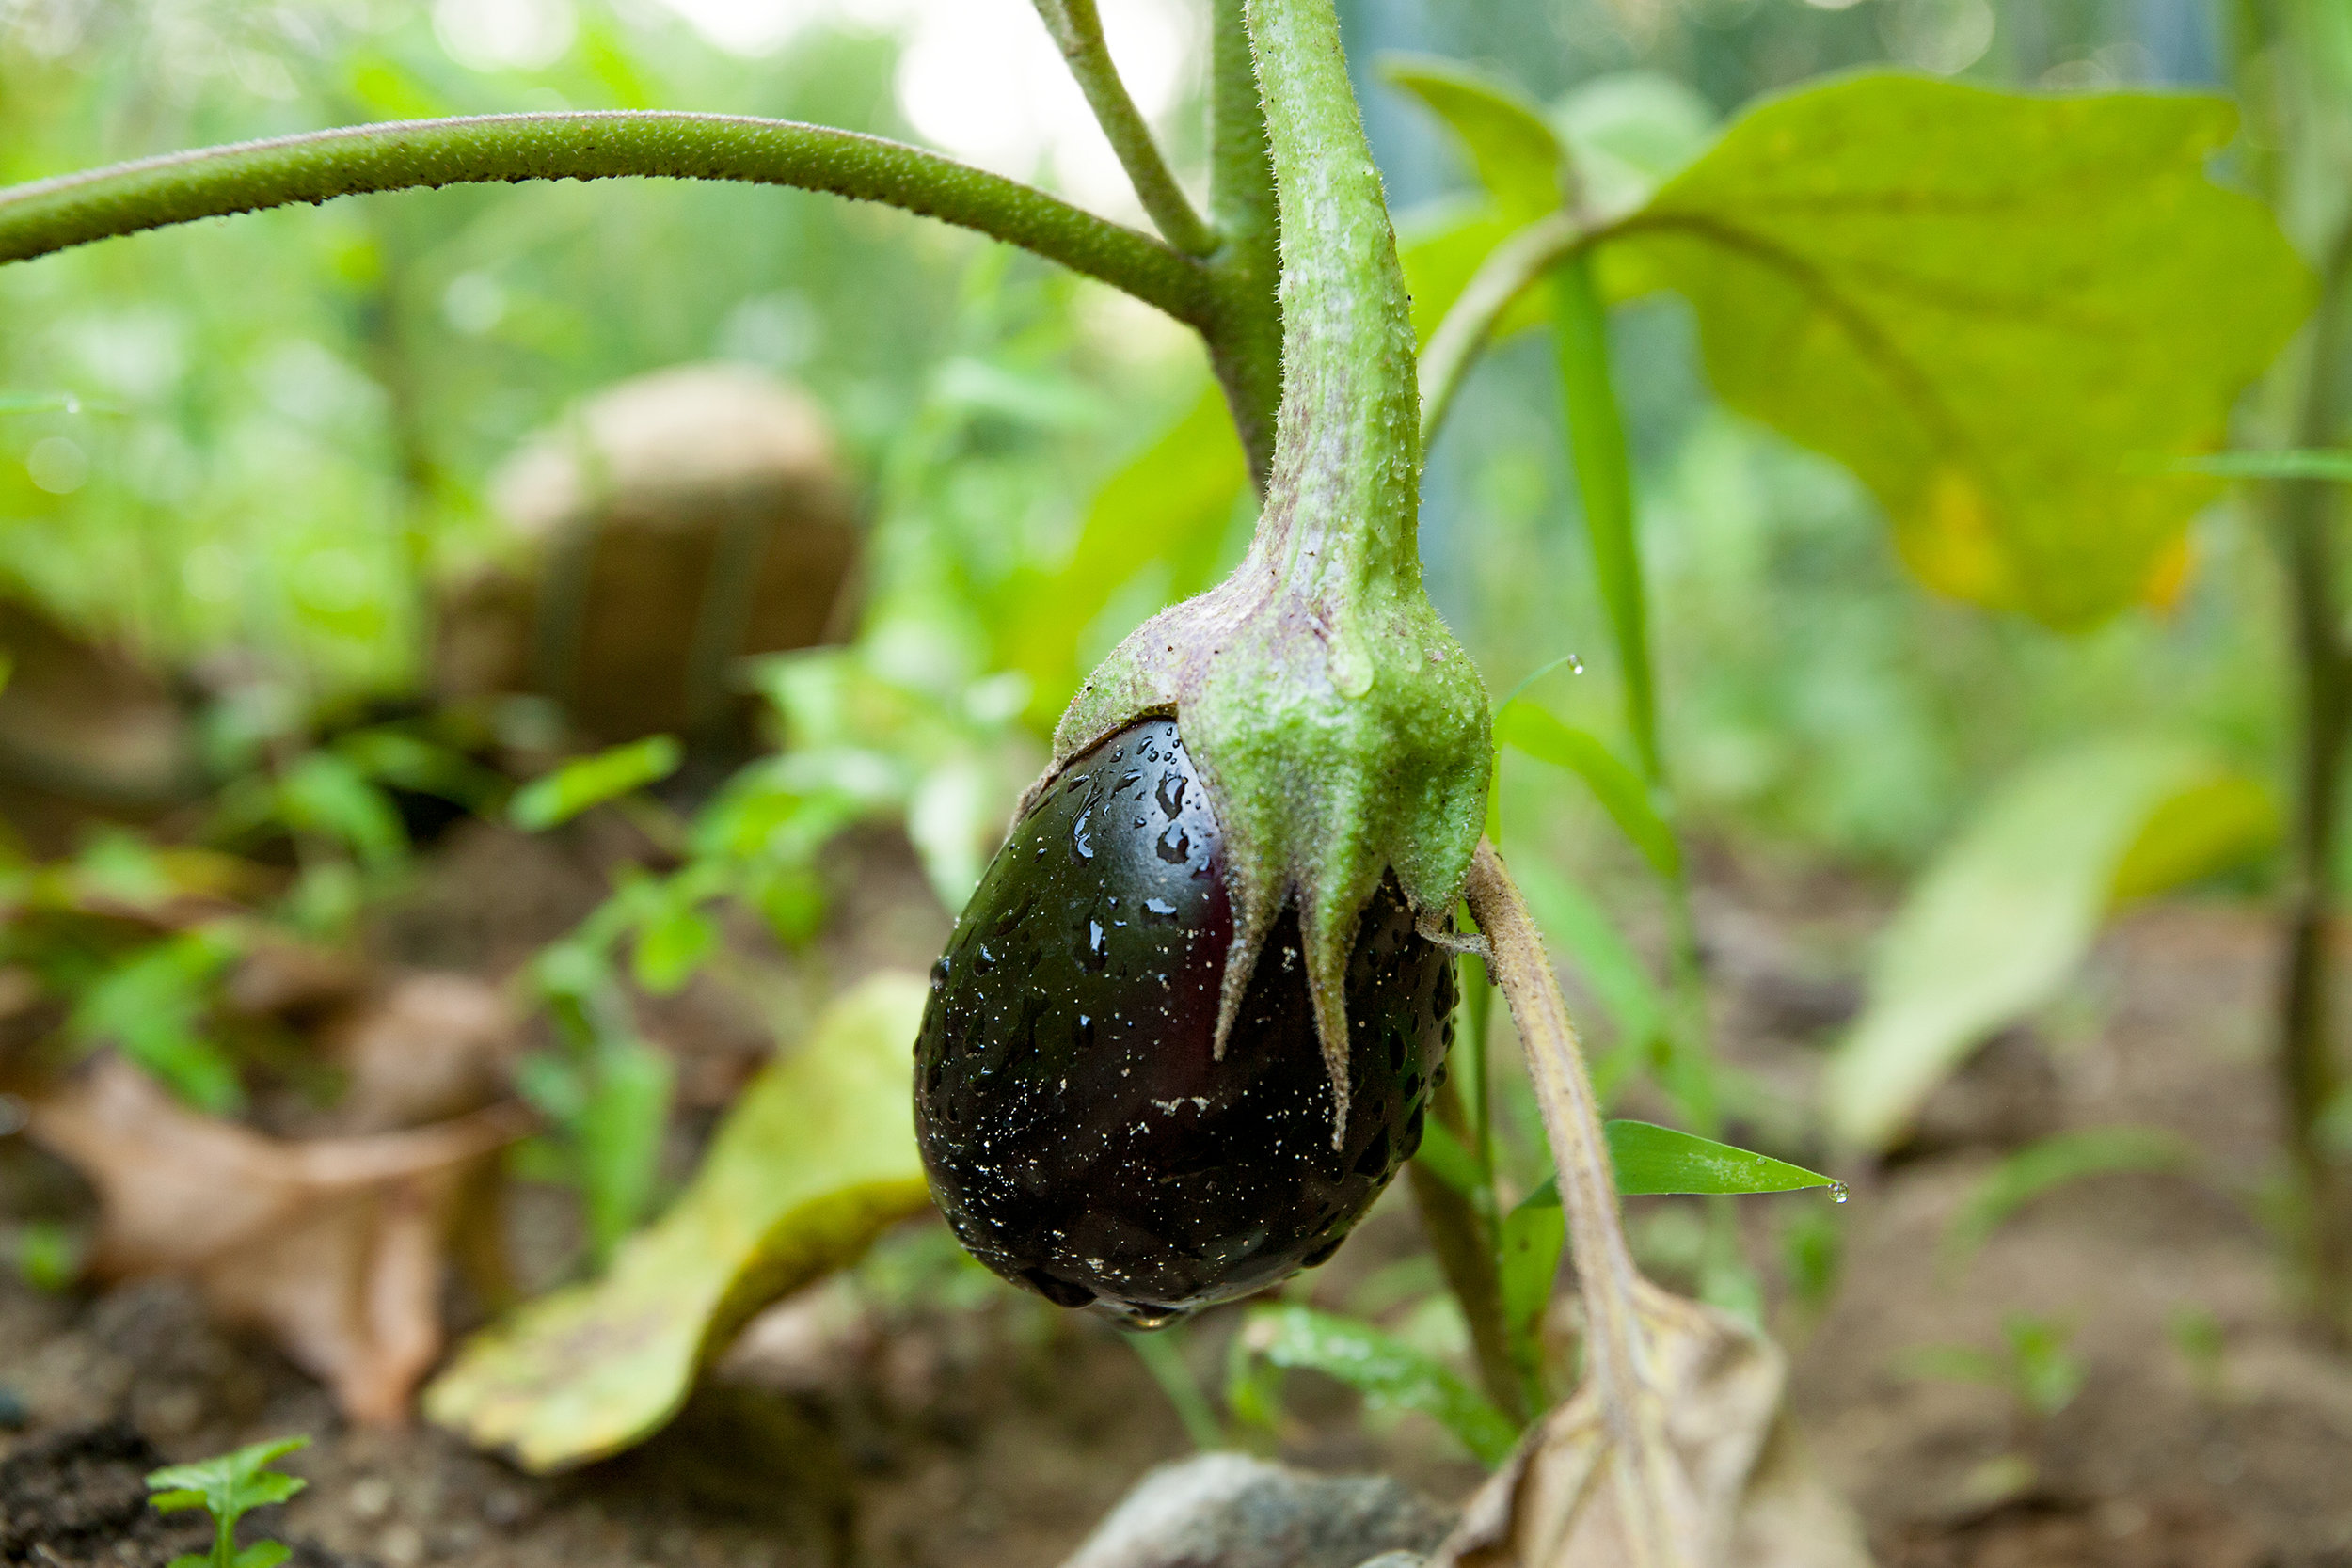 GARDEN-AT-SACRED-GROUND-FARM-EGGPLANT 080114-©-JONATHAN-R.-BECKERMAN-PHOTOGRAPHY-34.jpg